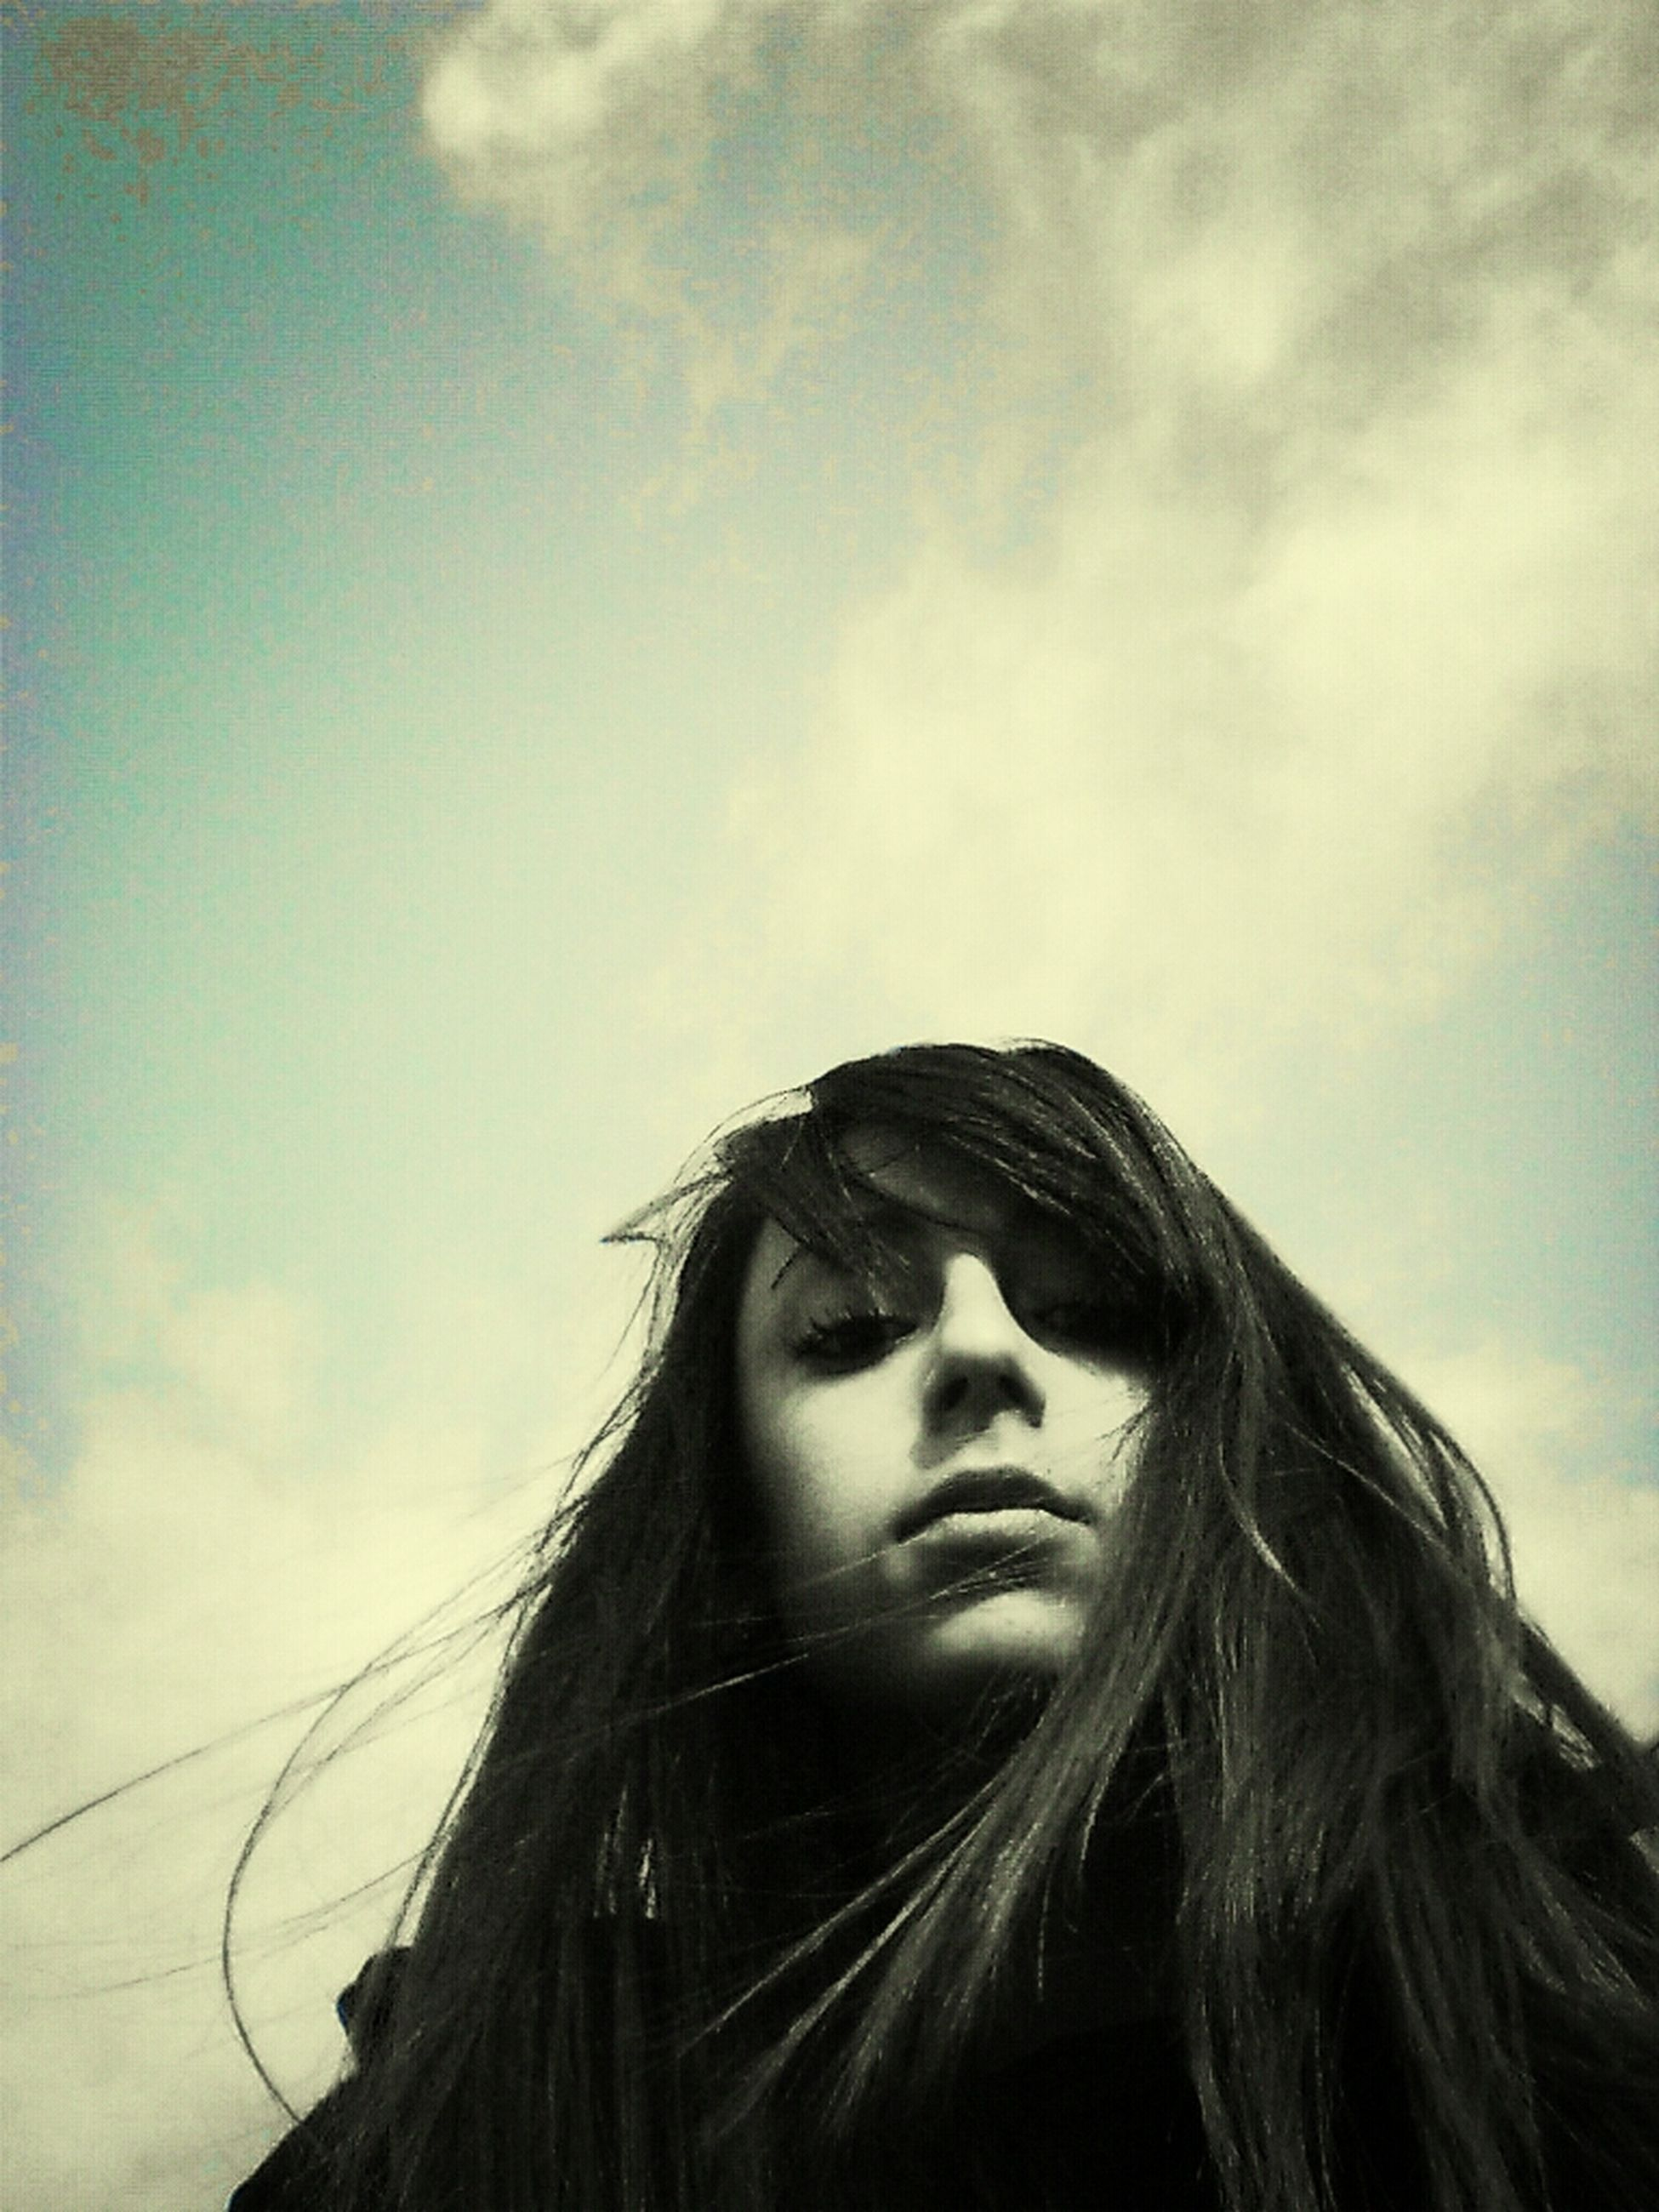 young adult, person, headshot, young women, looking at camera, portrait, long hair, low angle view, sky, lifestyles, front view, leisure activity, head and shoulders, day, human face, contemplation, smiling